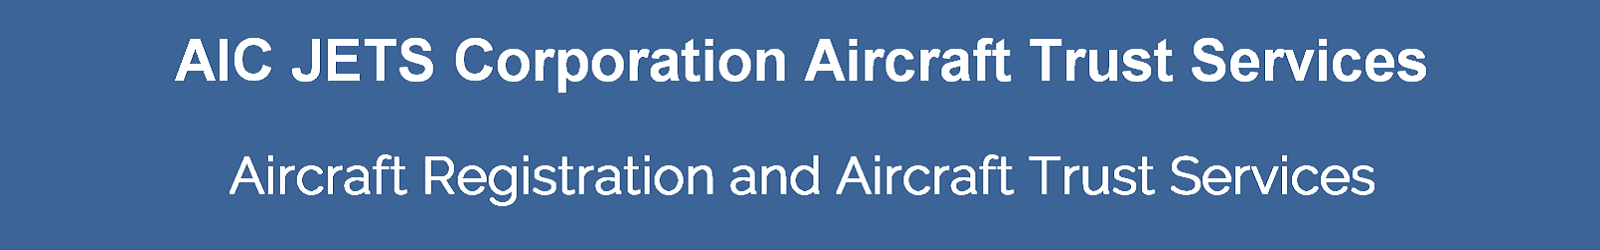 Aircraft Owner Trustee Services | FAA Aircraft Trust Registration | Aircraft Owner Trusts | FAA Aircraft Owner Trust | Aircraft Trusts AIC JETS Corporation | FAA Registration of Aircraft for Non US Citizens | Benefits to Registering an Aircraft in Trust